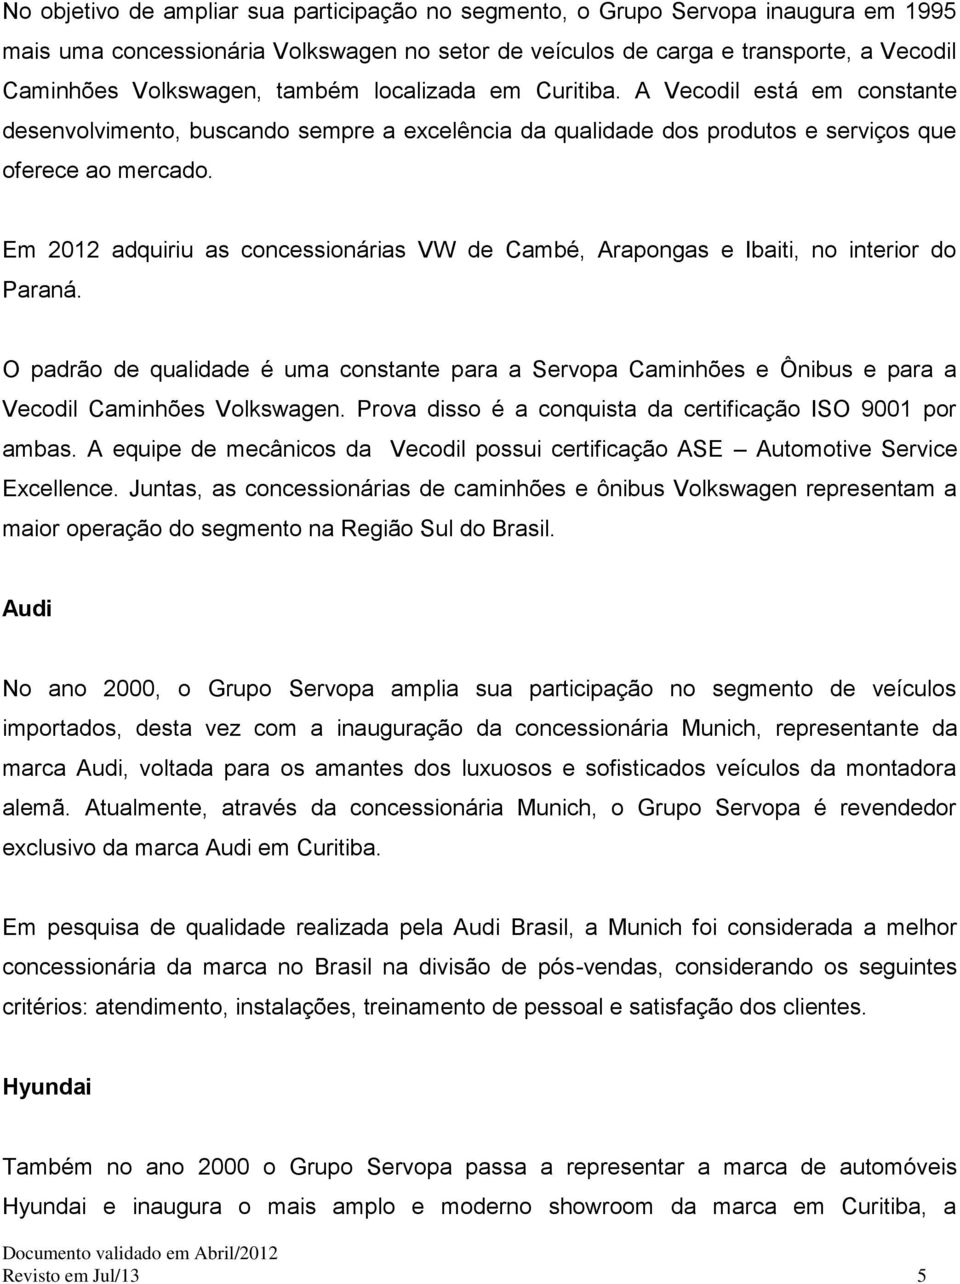 Em 2012 adquiriu as concessionárias VW de Cambé, Arapongas e Ibaiti, no interior do Paraná.